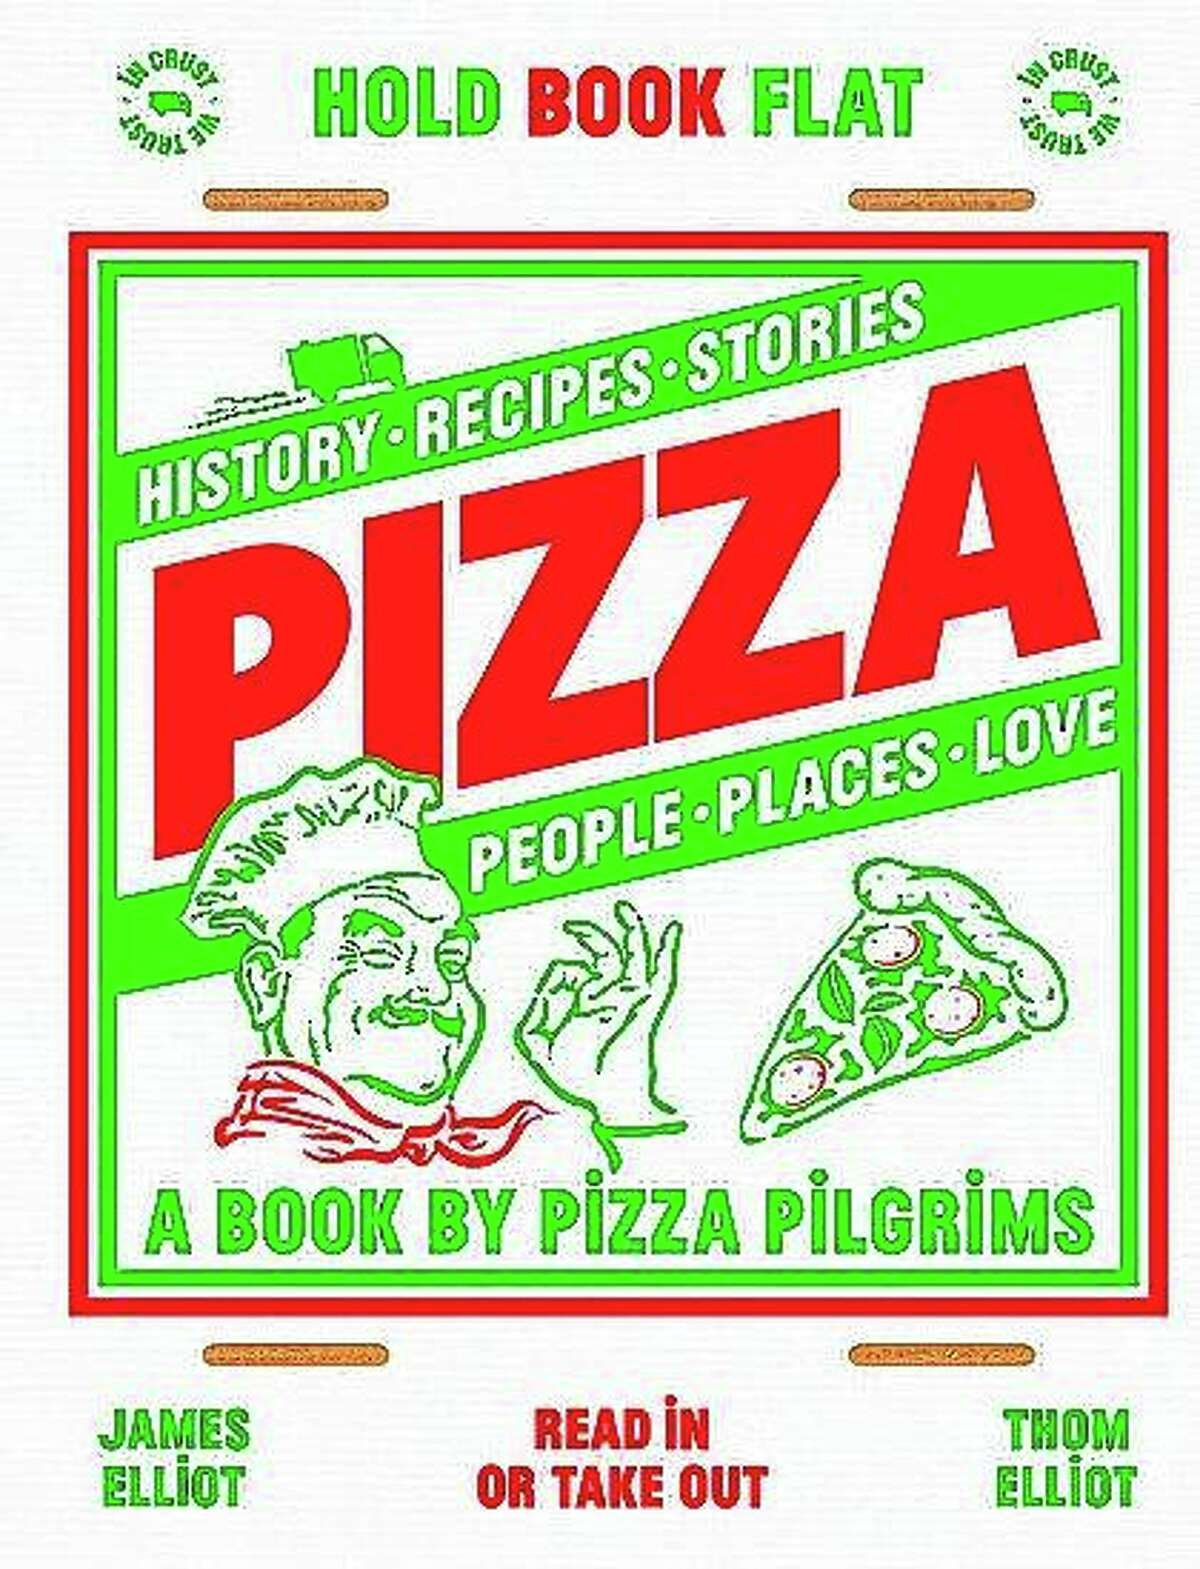 """""""Pizza: History, recipes, stories, people, places, love,"""" by Thom Elliot and James Elliot, explores the world's love affair with the roundish dough cooked with toppings."""